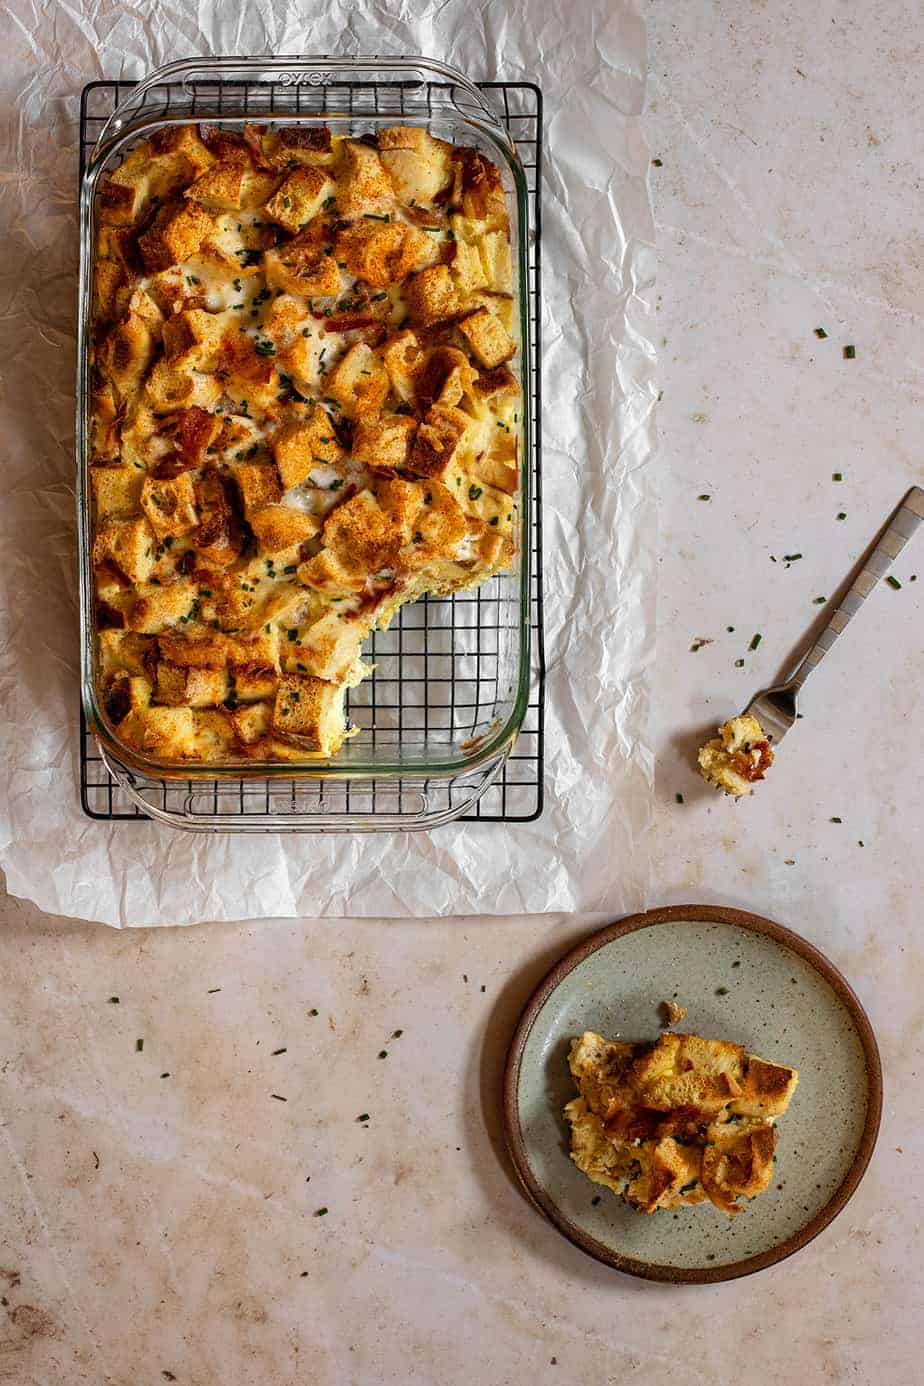 a 9x13-inch pan full of english muffin breakfast casserole with a scoop taken out of it